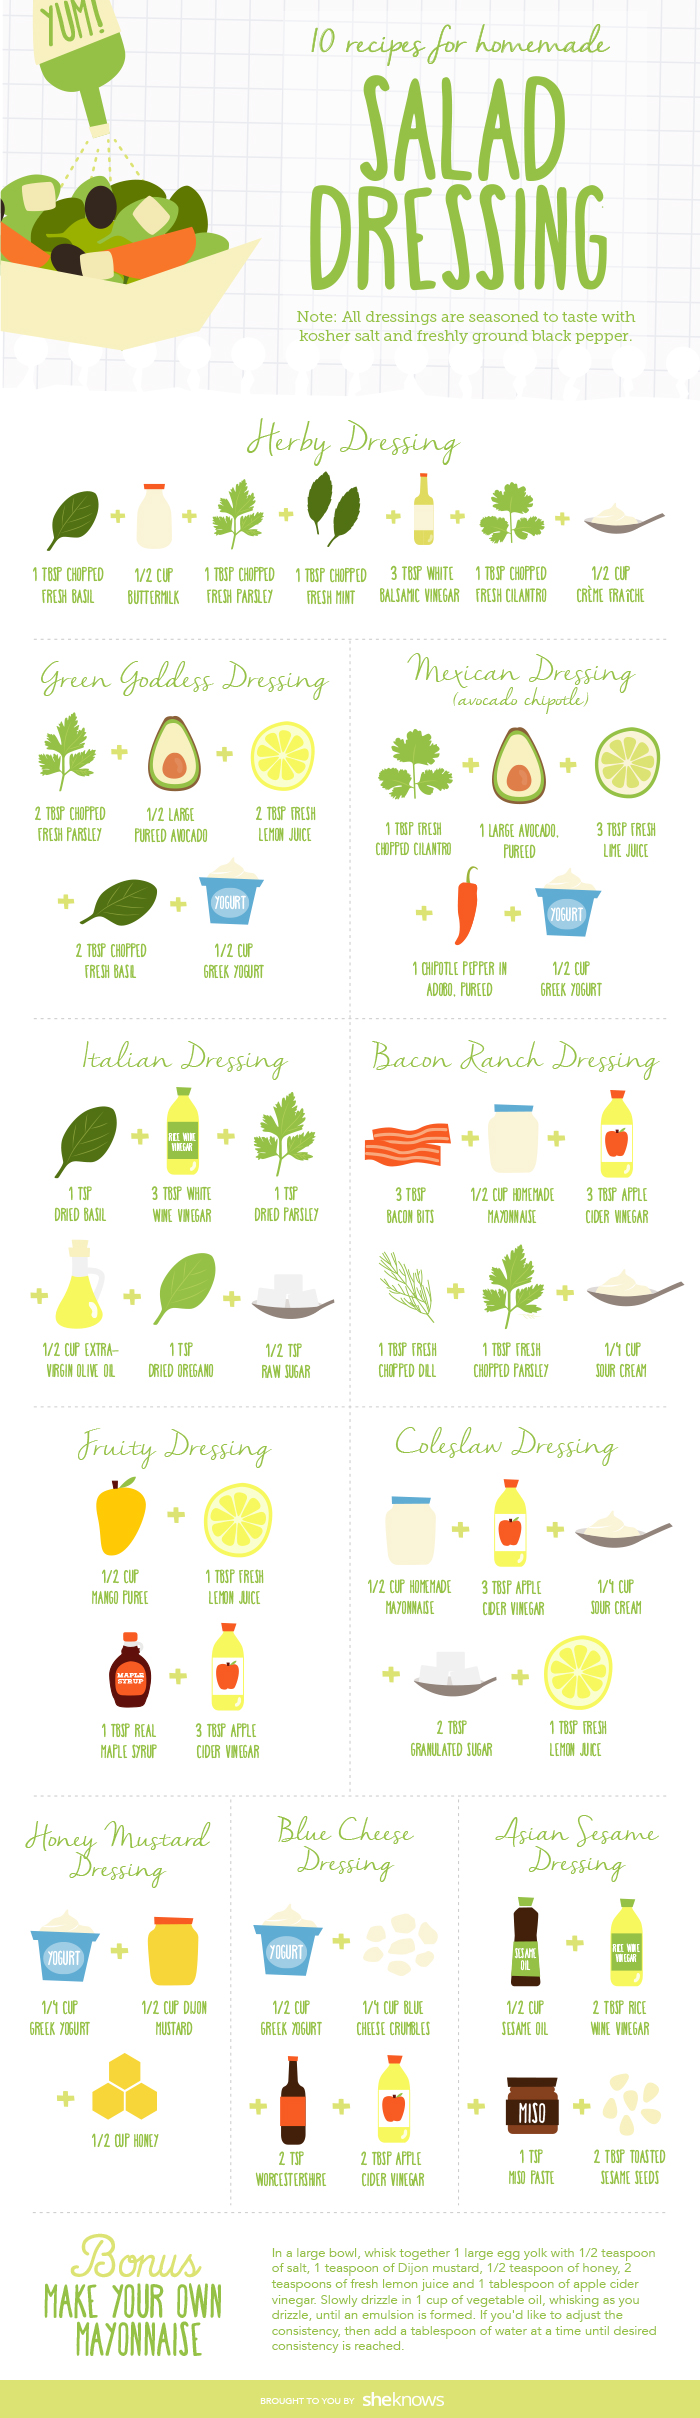 10 Easy Dressings from She Knows